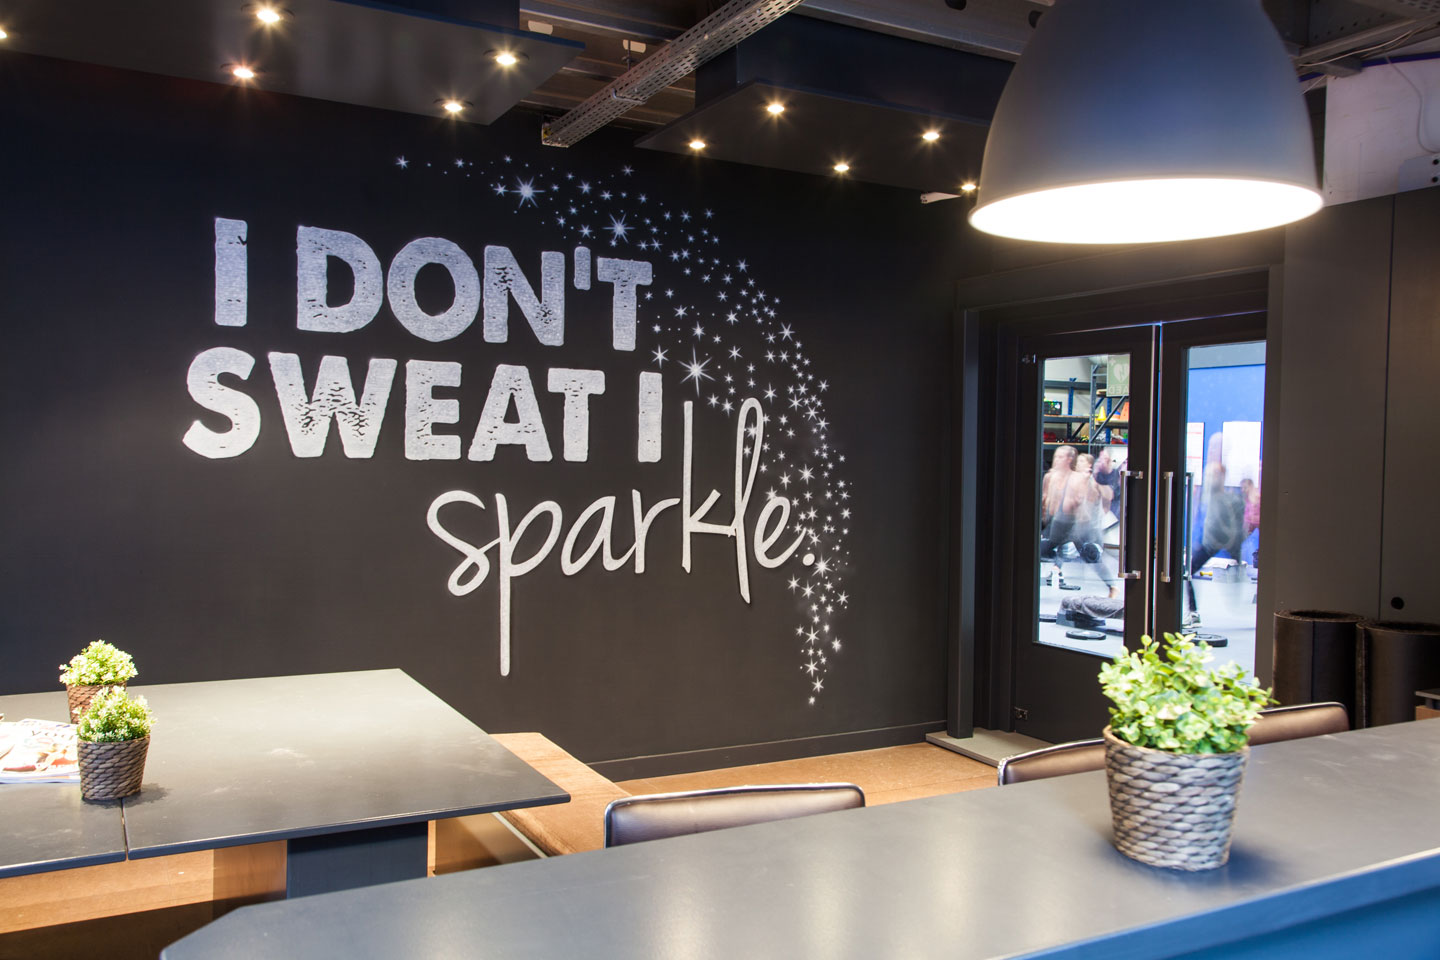 Workout motivatie muurschildering. I don't sweat I sparkle